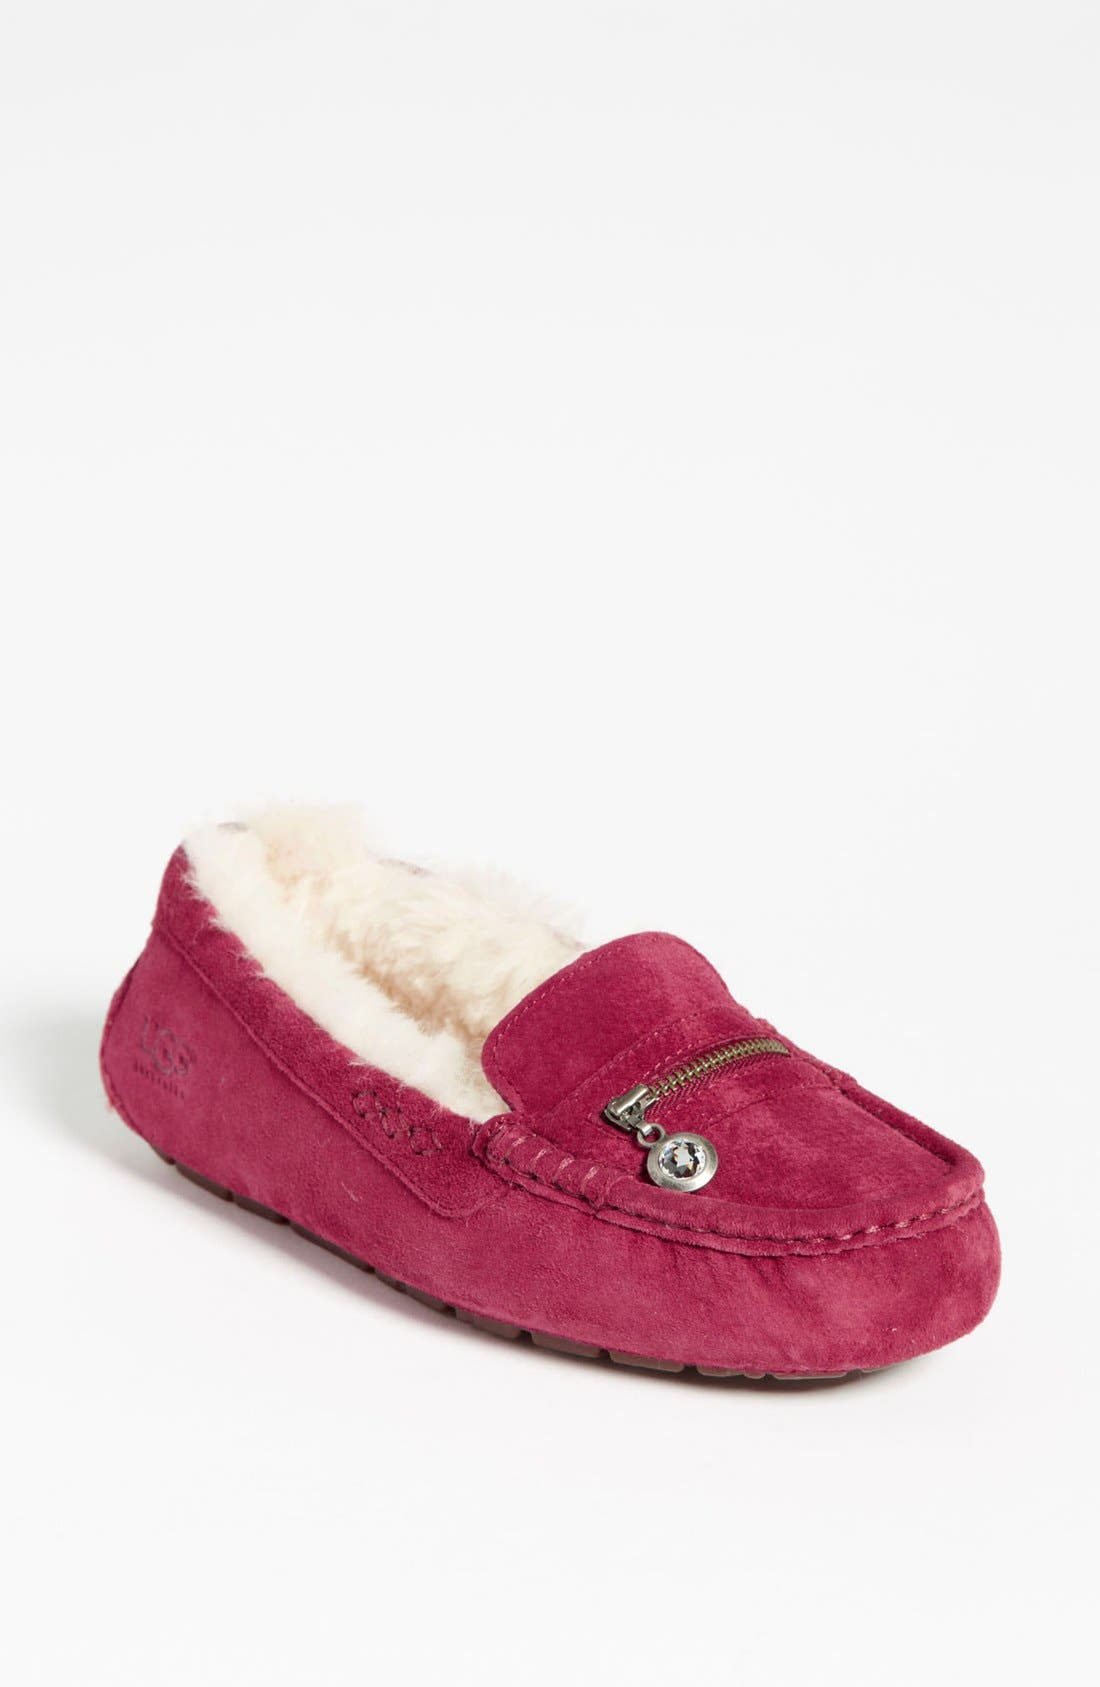 Alternate Image 1 Selected - UGG® Australia 'Ansley Charm' Slipper (Women)